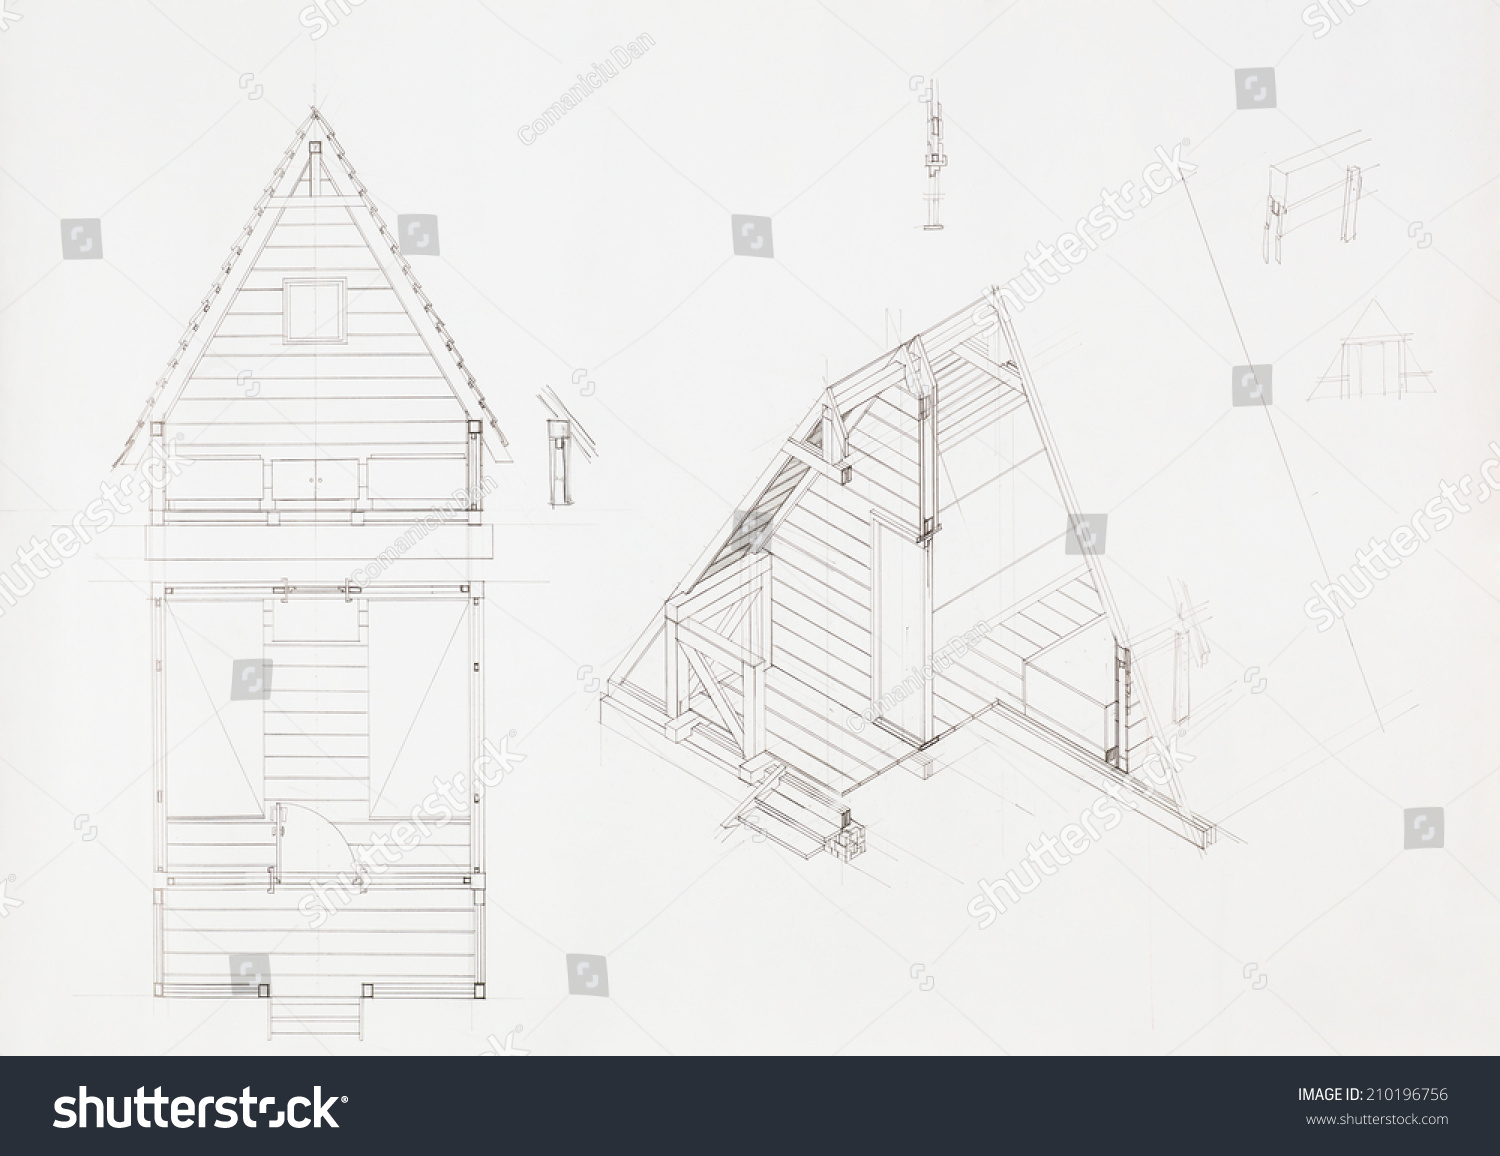 Attic drawing Haunted House Architectural Blueprint Of House With Attic Drawn By Hand Royalty Free Stock Illustration Of Architectural Blueprint House